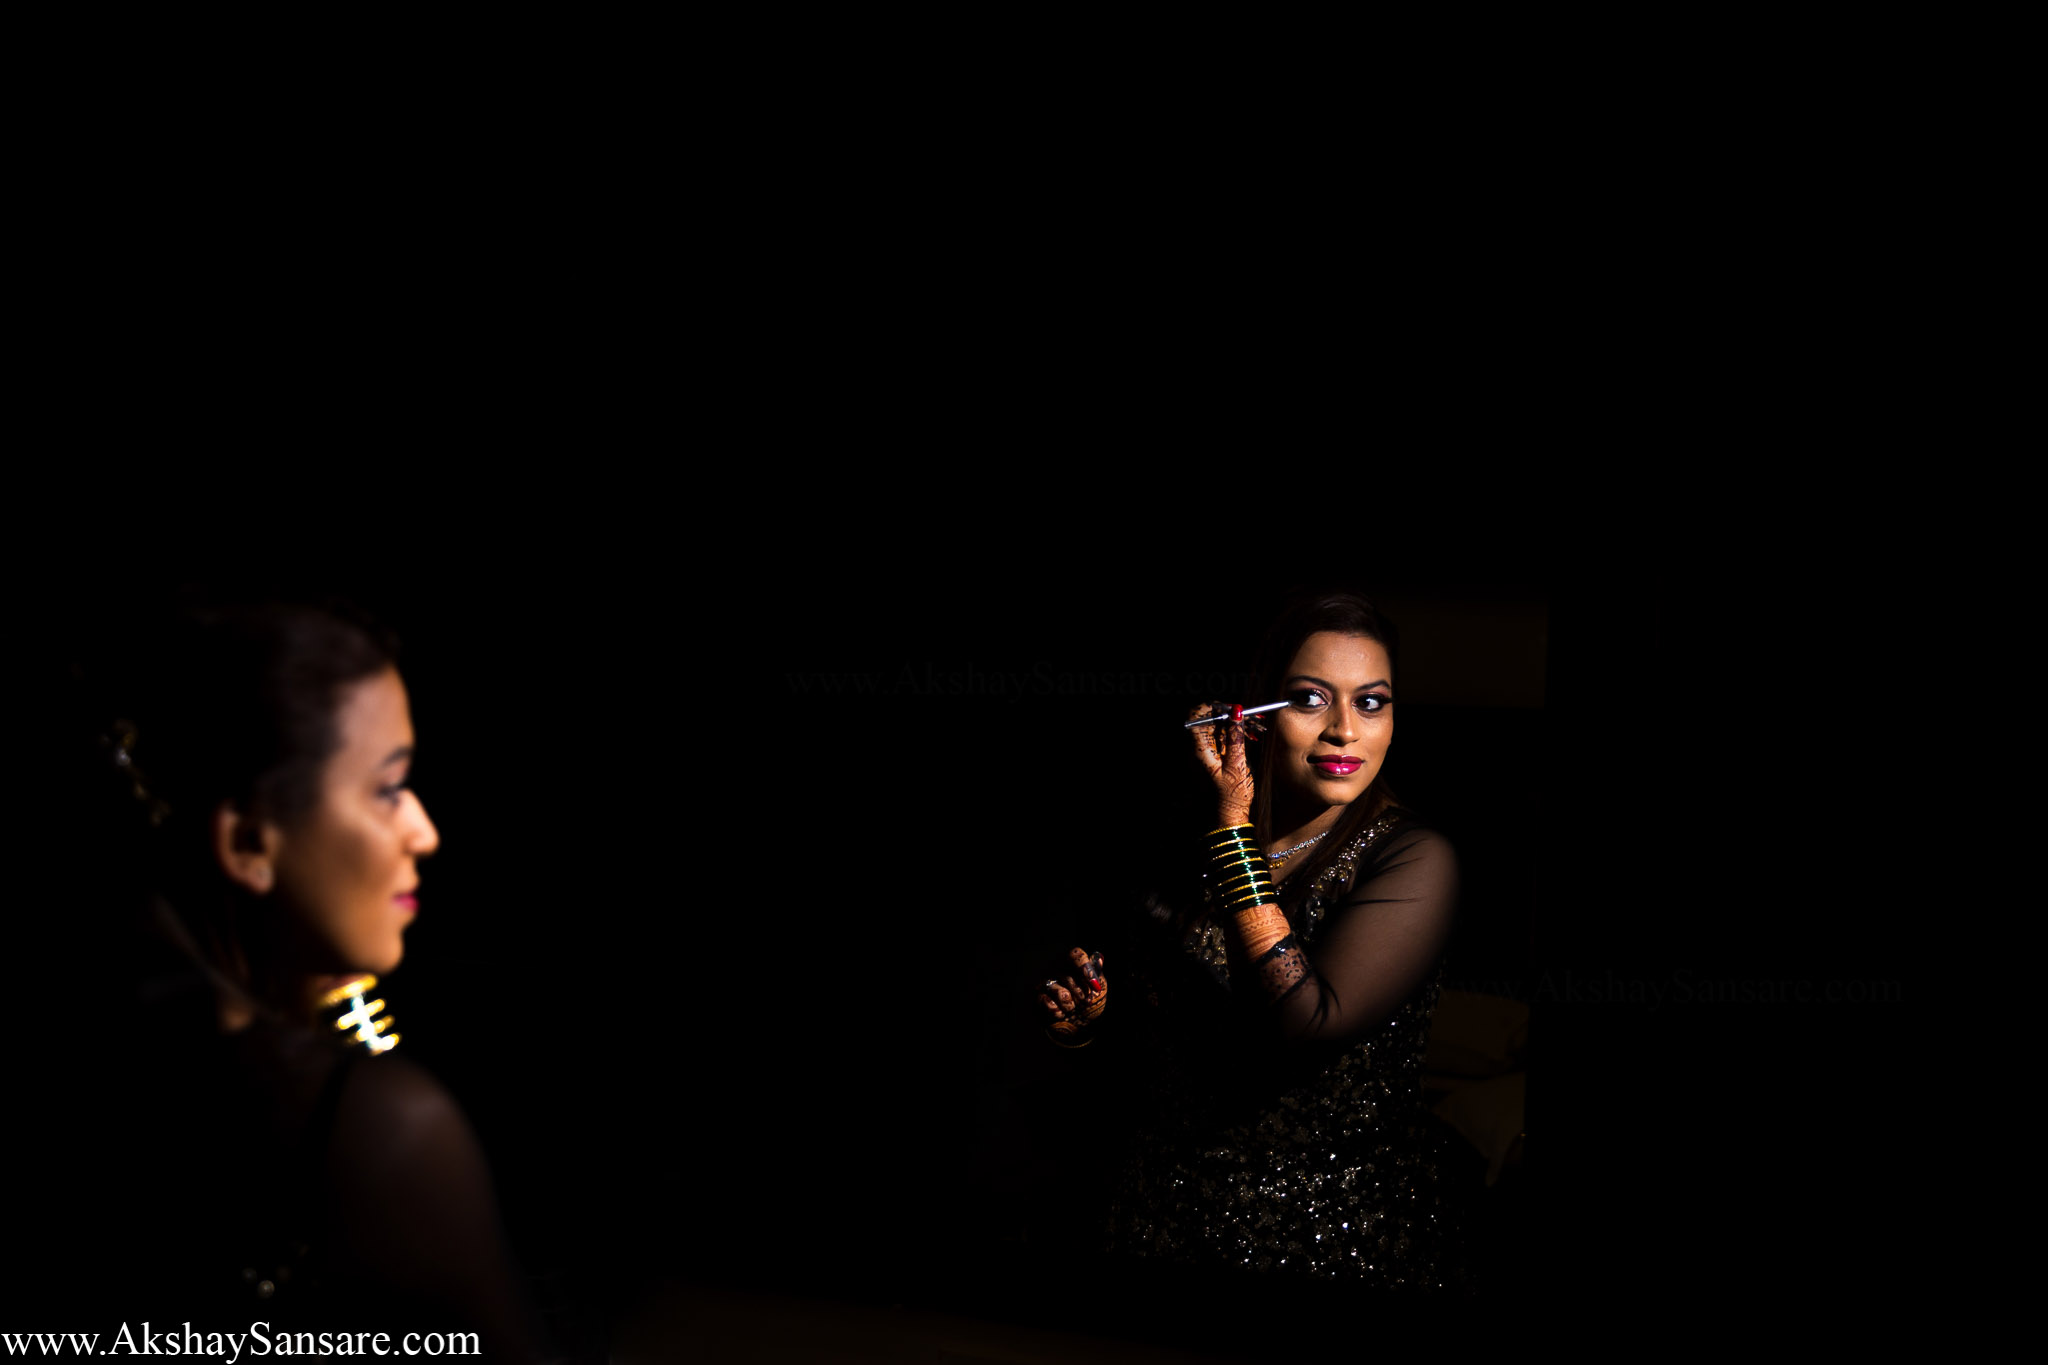 Ajay & Devika Akshay Sansare Photography Best Candid wedding photographer in mumbai india33.jpg